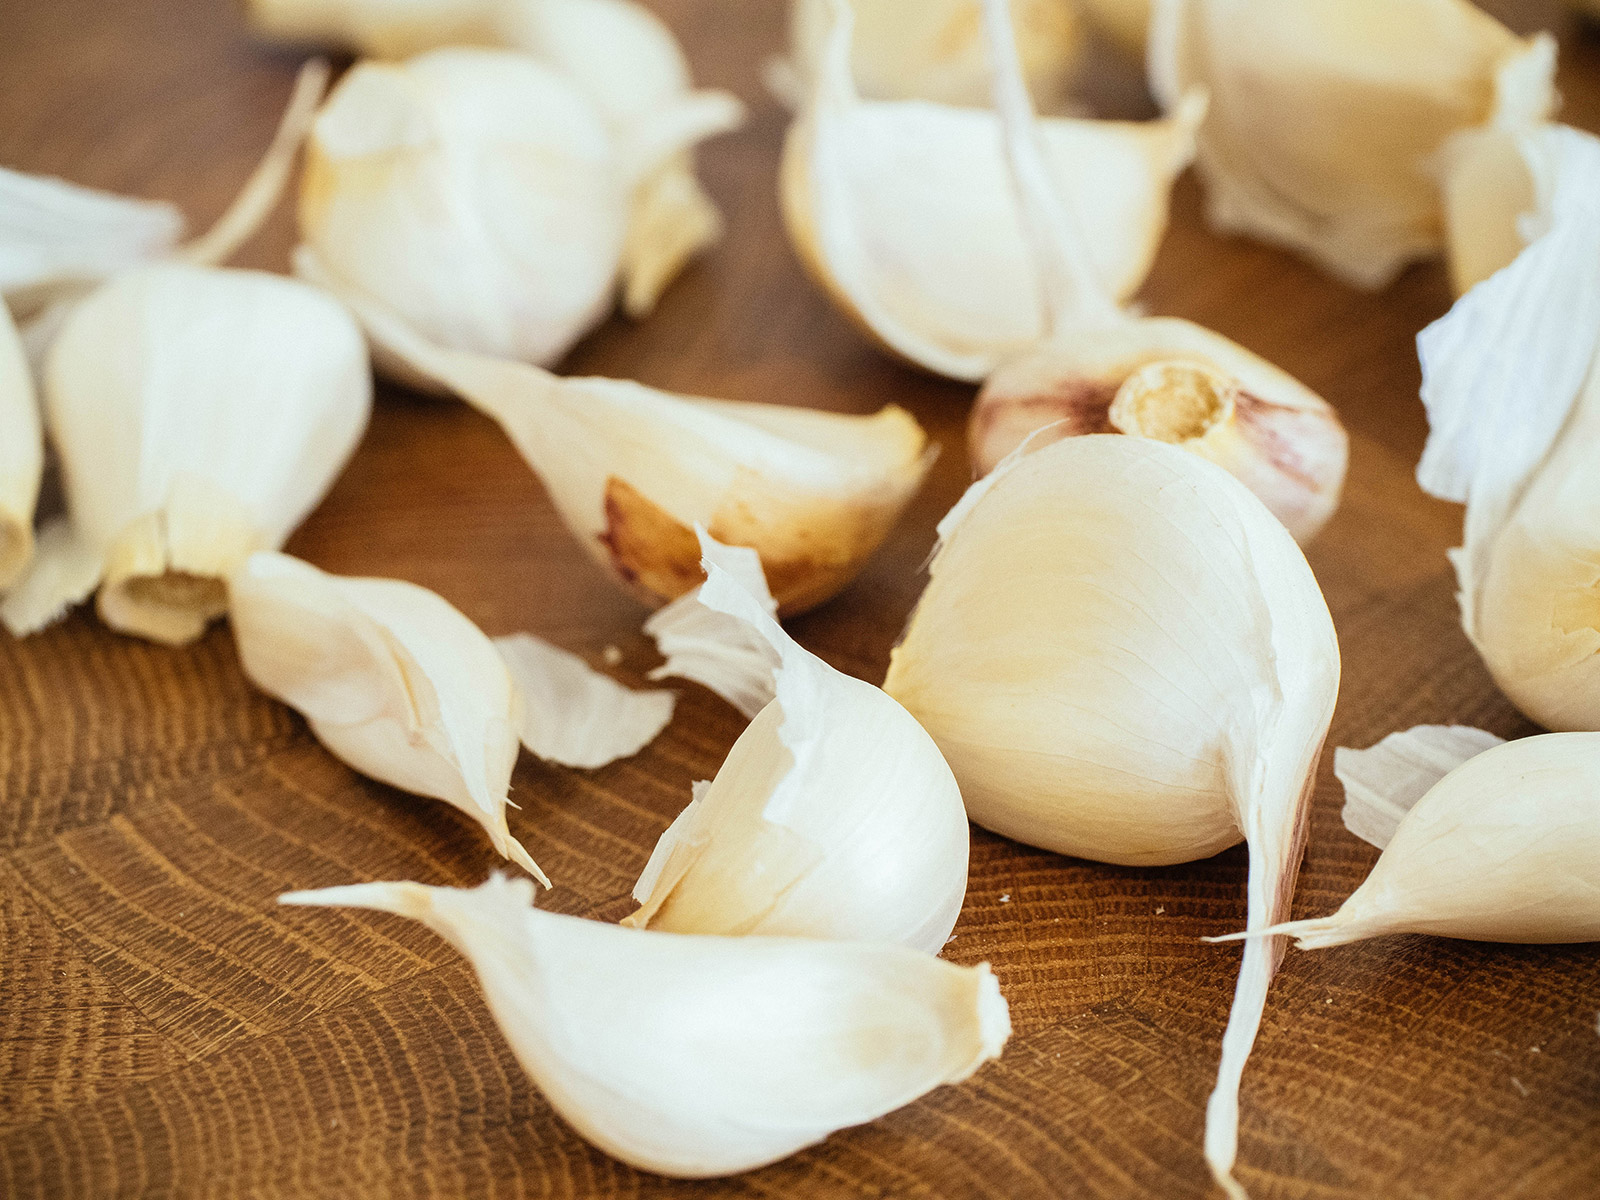 Garlic cloves separated from a bulb